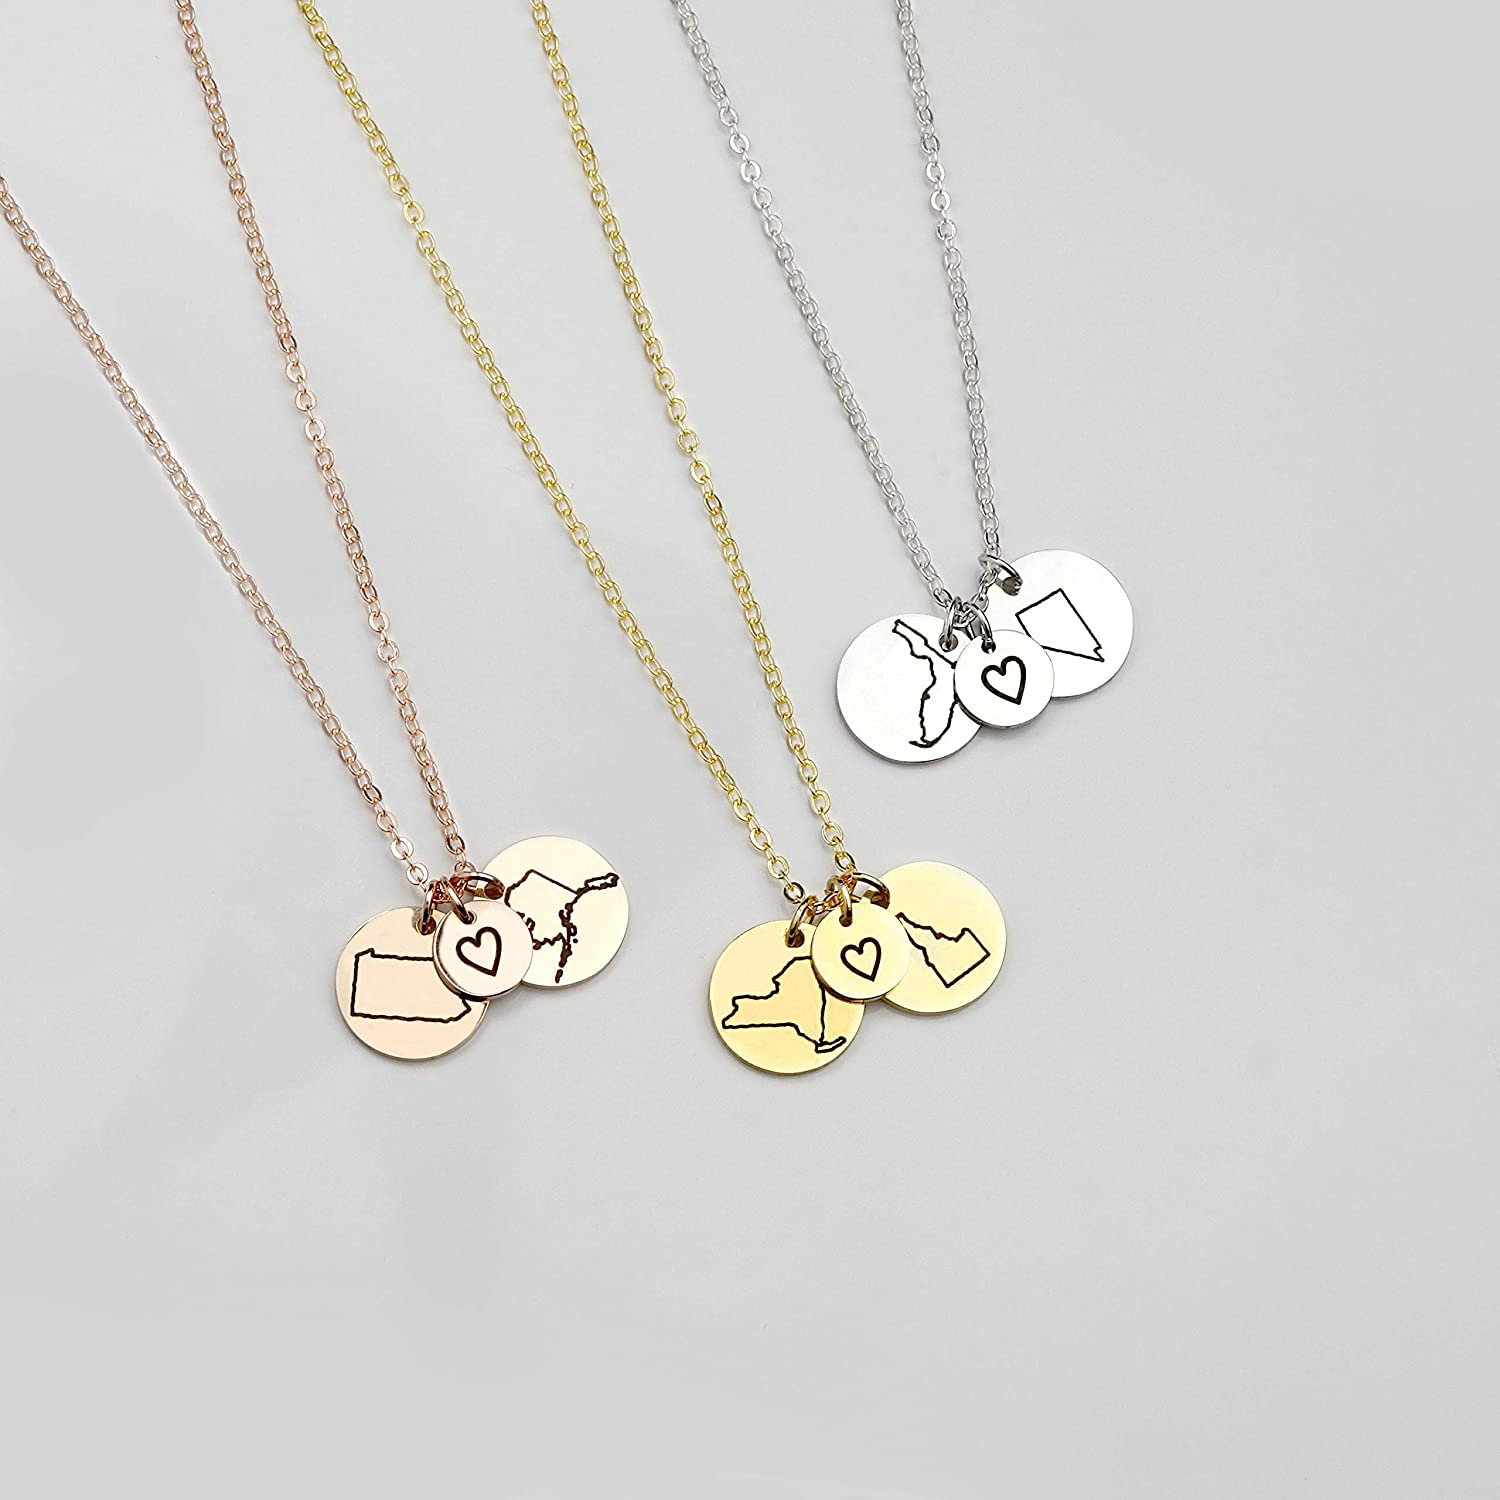 5411a0f284c87 Best Friend Gifts Long Distance Friendship Jewelry State Necklace Charm  Necklaces Custom Necklace Best Gifts Name Rose Necklace - CN-LDS